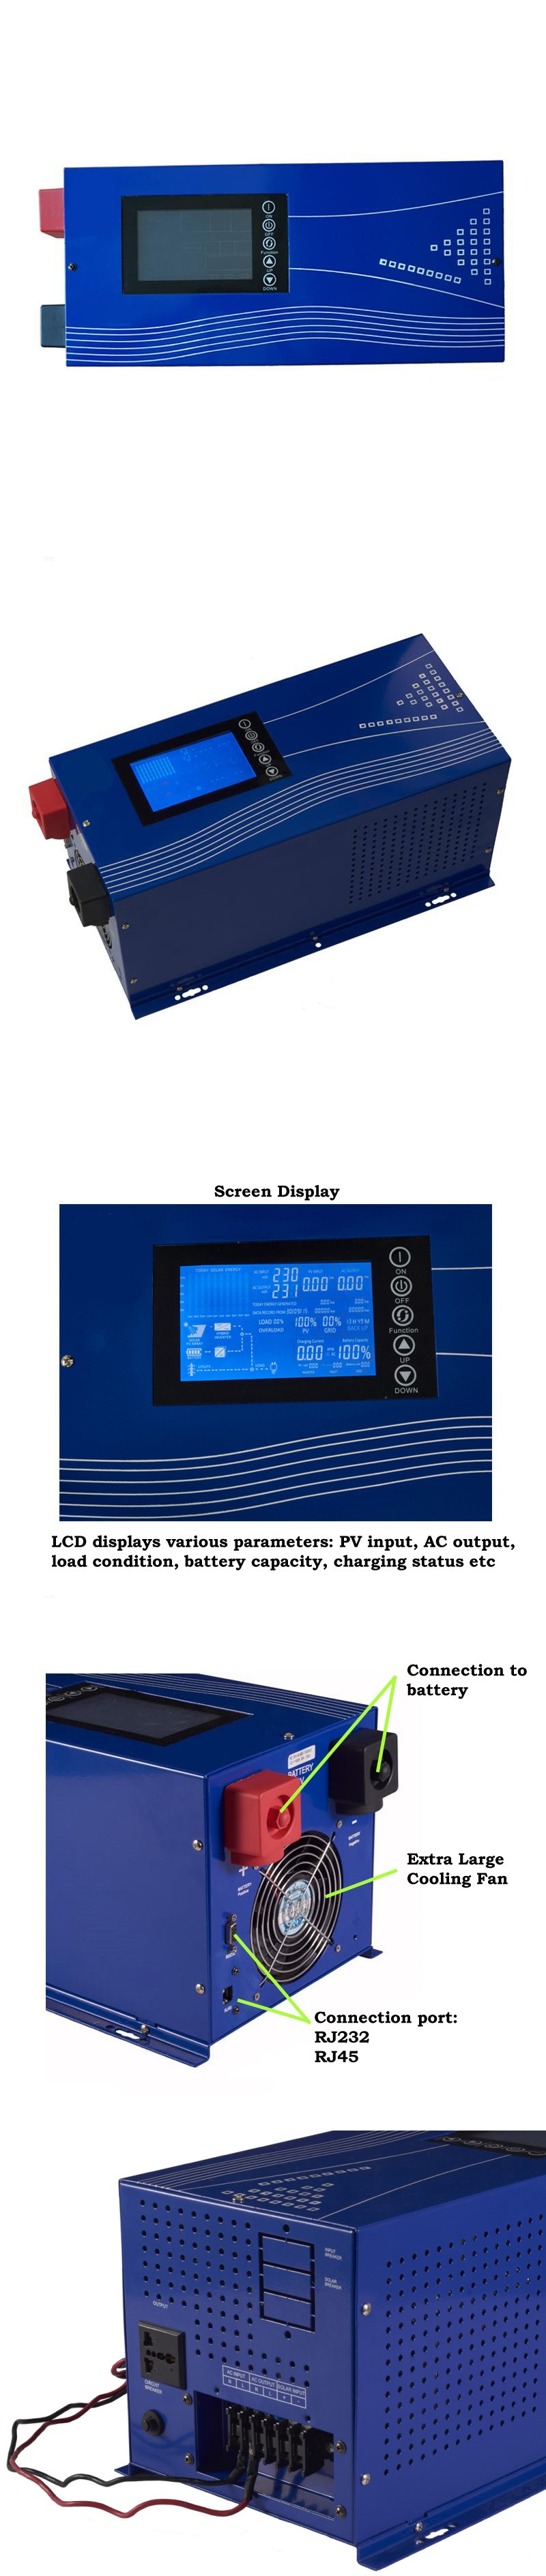 Hybrid Solar Inverter 5000w 96v Psc G Home Power System Biner Box Wiring Diagram Its Professional Lcd Display Offers User Configurable And Easy Accessible Button Operation Such As Battery Charging Current Ac Charger Priority